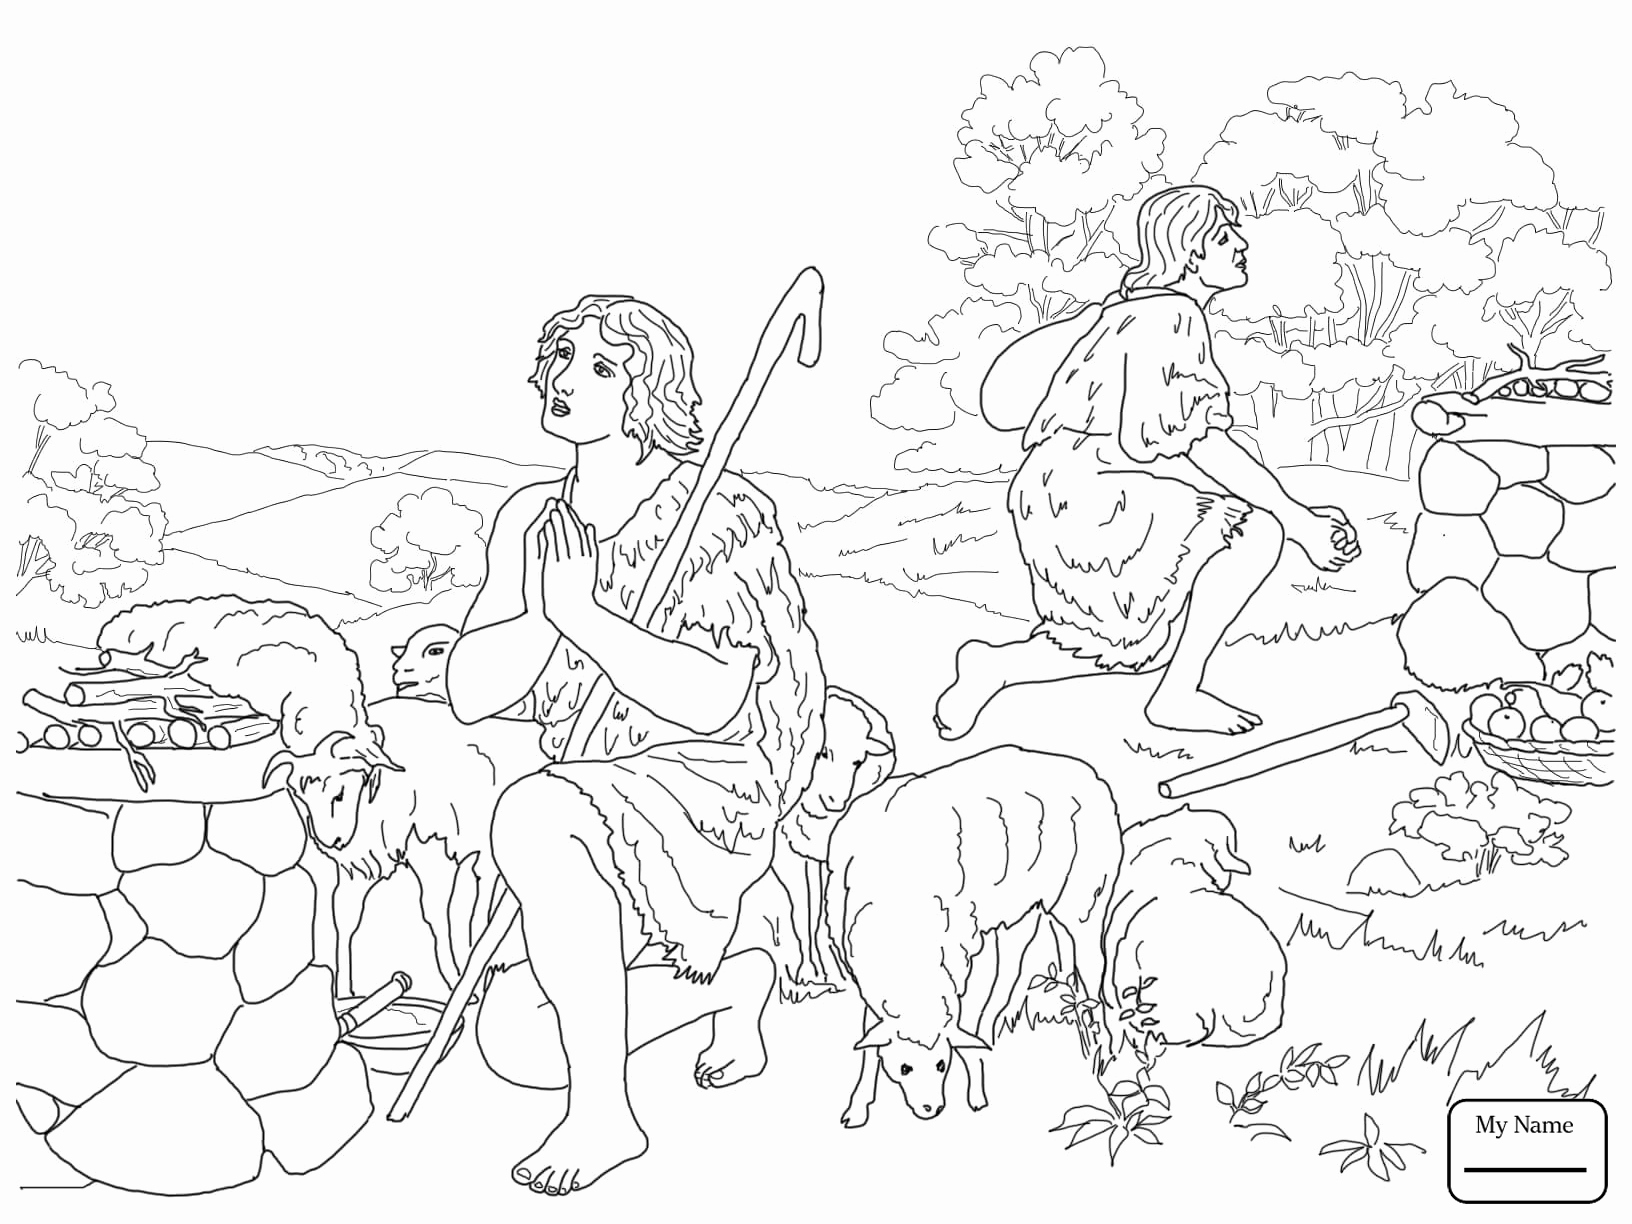 Cain And Abel Coloring Page At Getcolorings